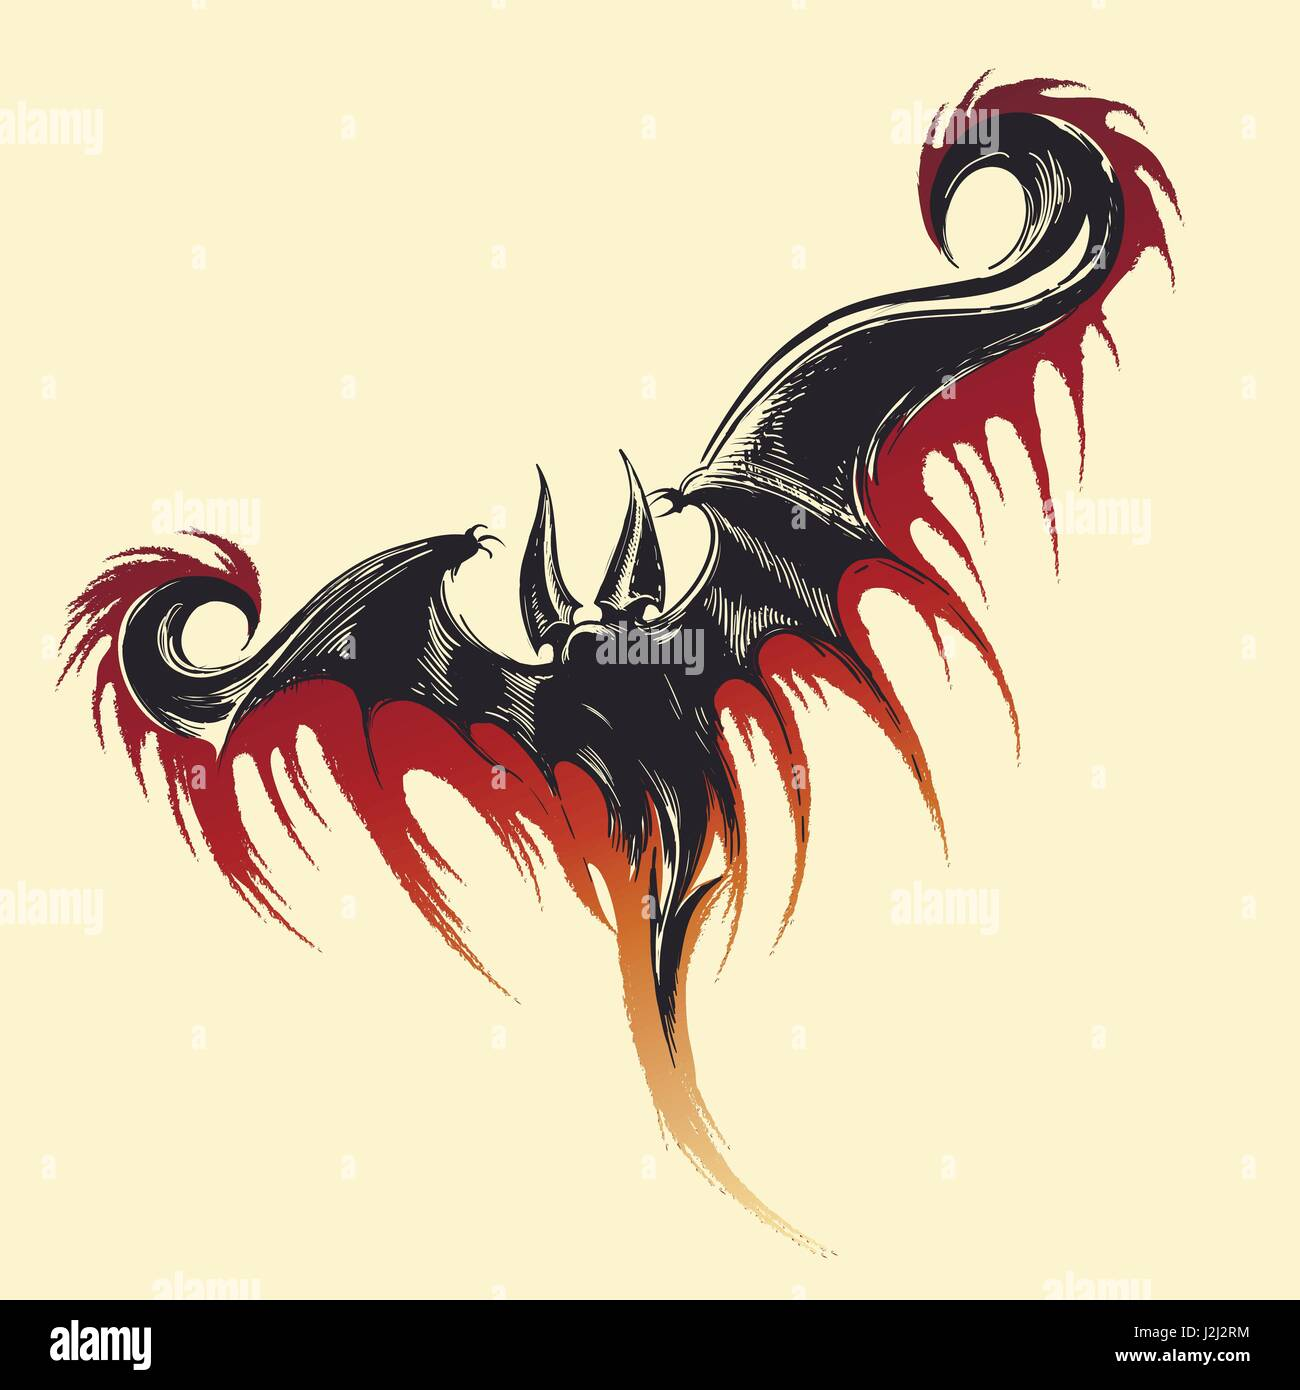 Hand drawn sketch of flying demon with splashes of blood. Vector illustration. - Stock Image